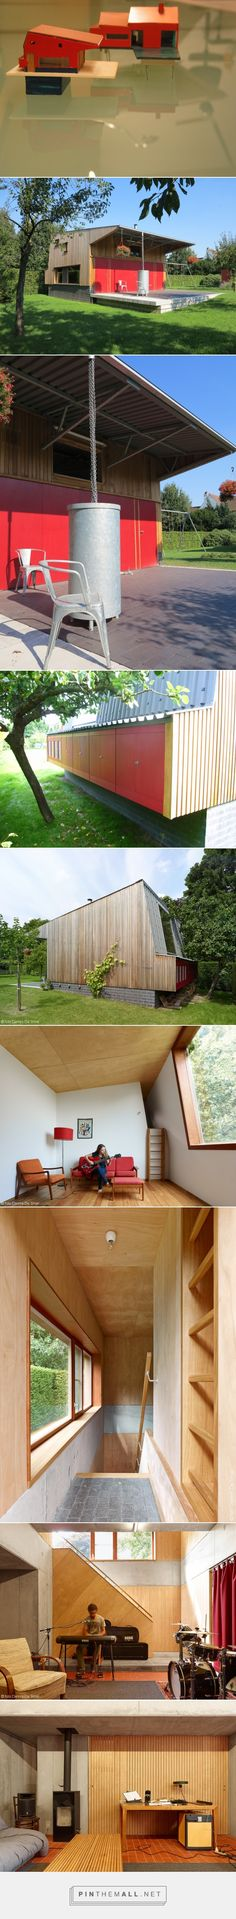 Tuin'uis | DeSmetVermeulen http://humble-homes.com/guest-house-combines-chicken-coop-tool-shed-music-room/ - created via http://pinthemall.net